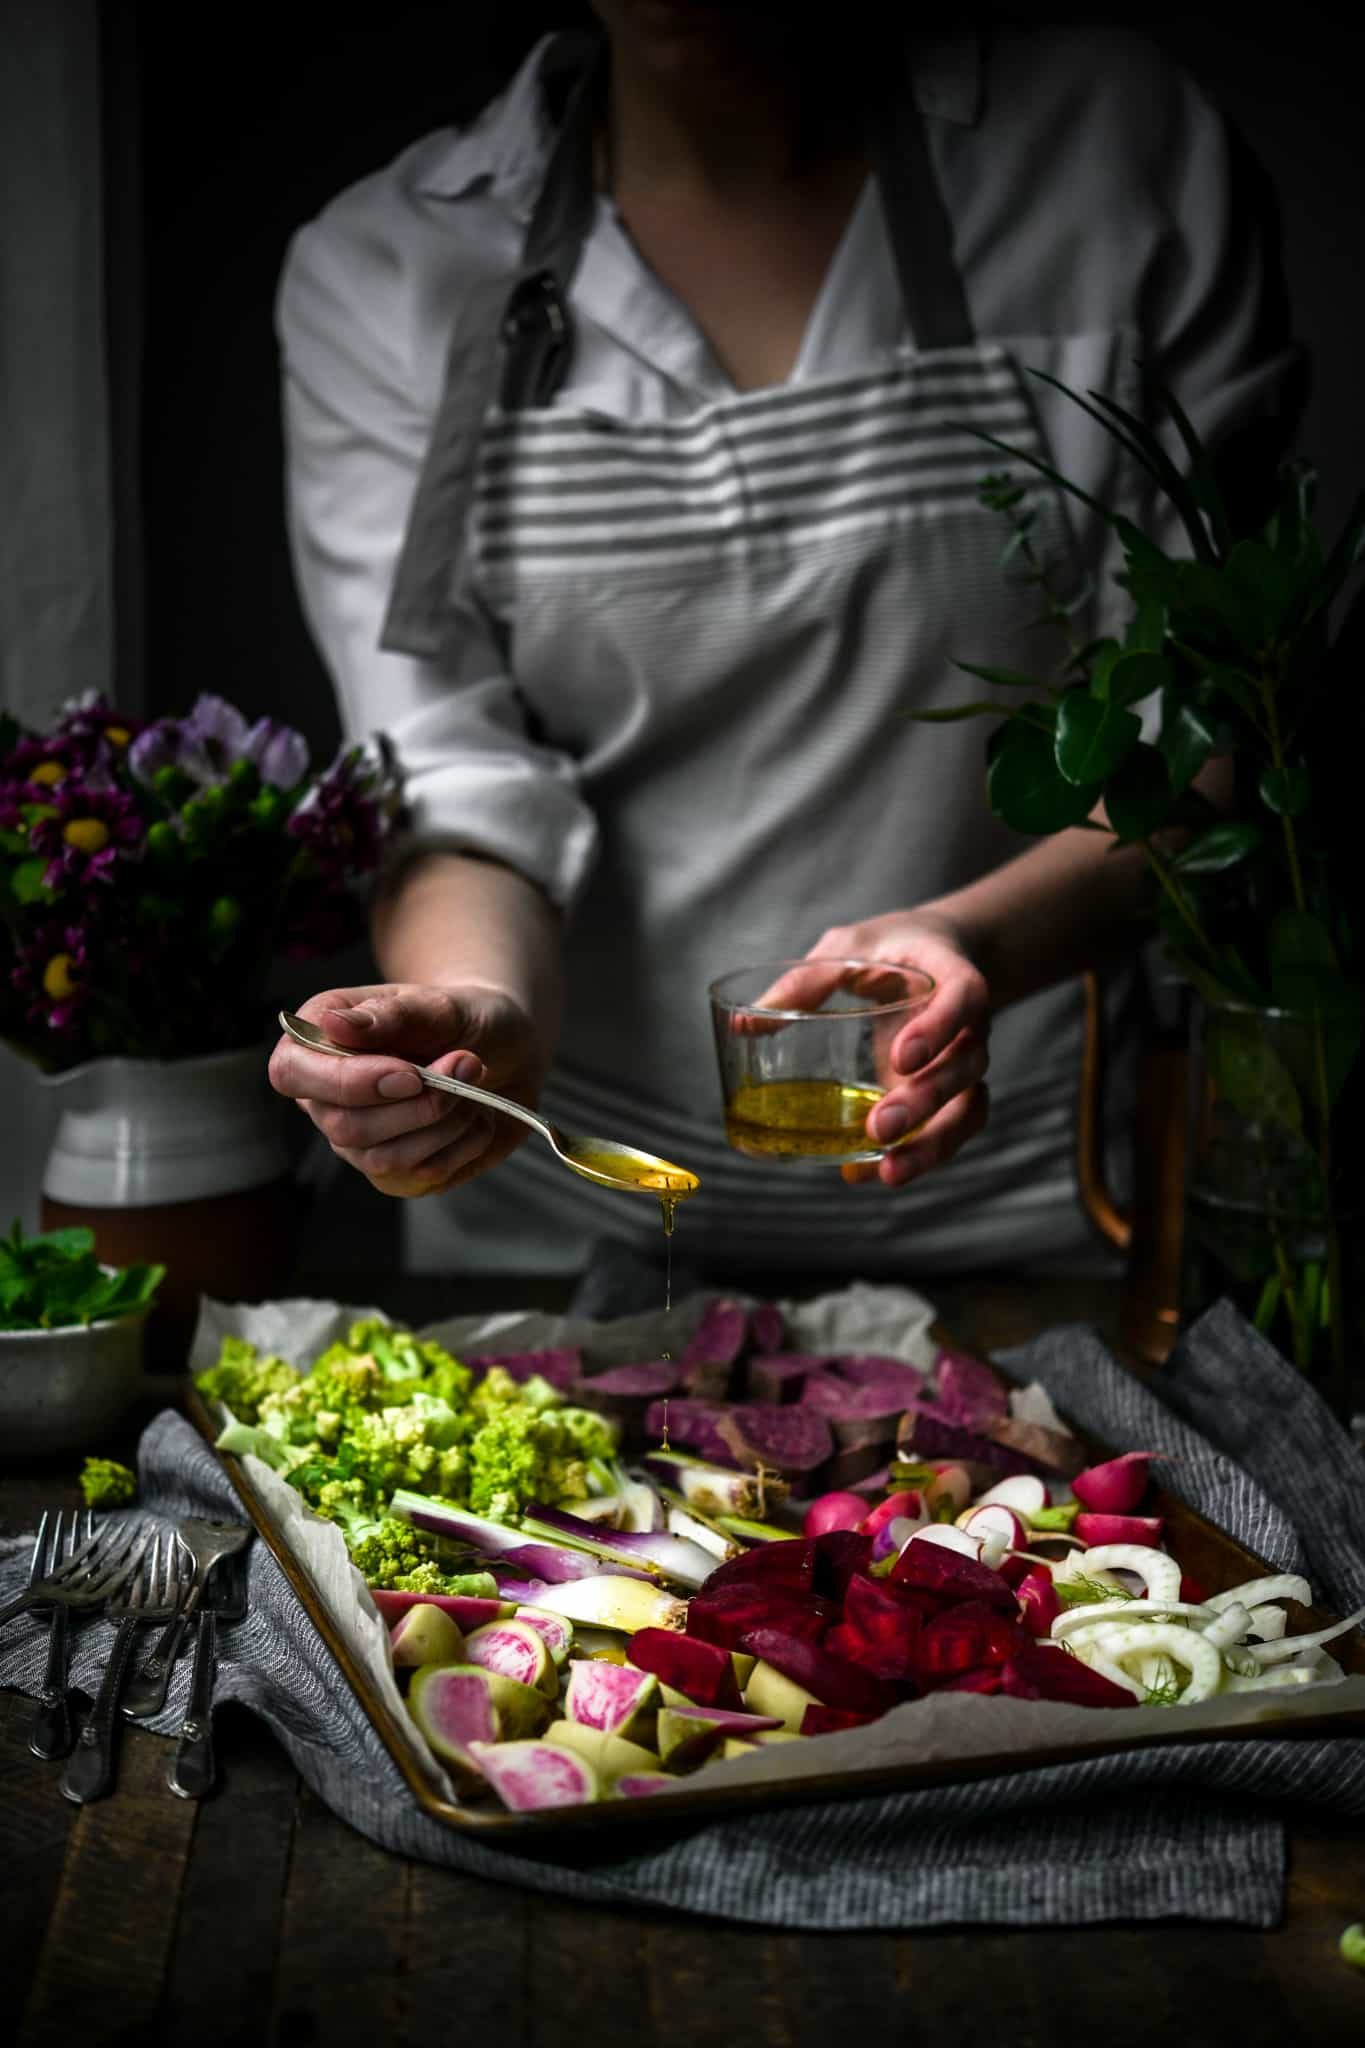 Person in apron drizzling olive oil onto sheet pan filled with vegetables